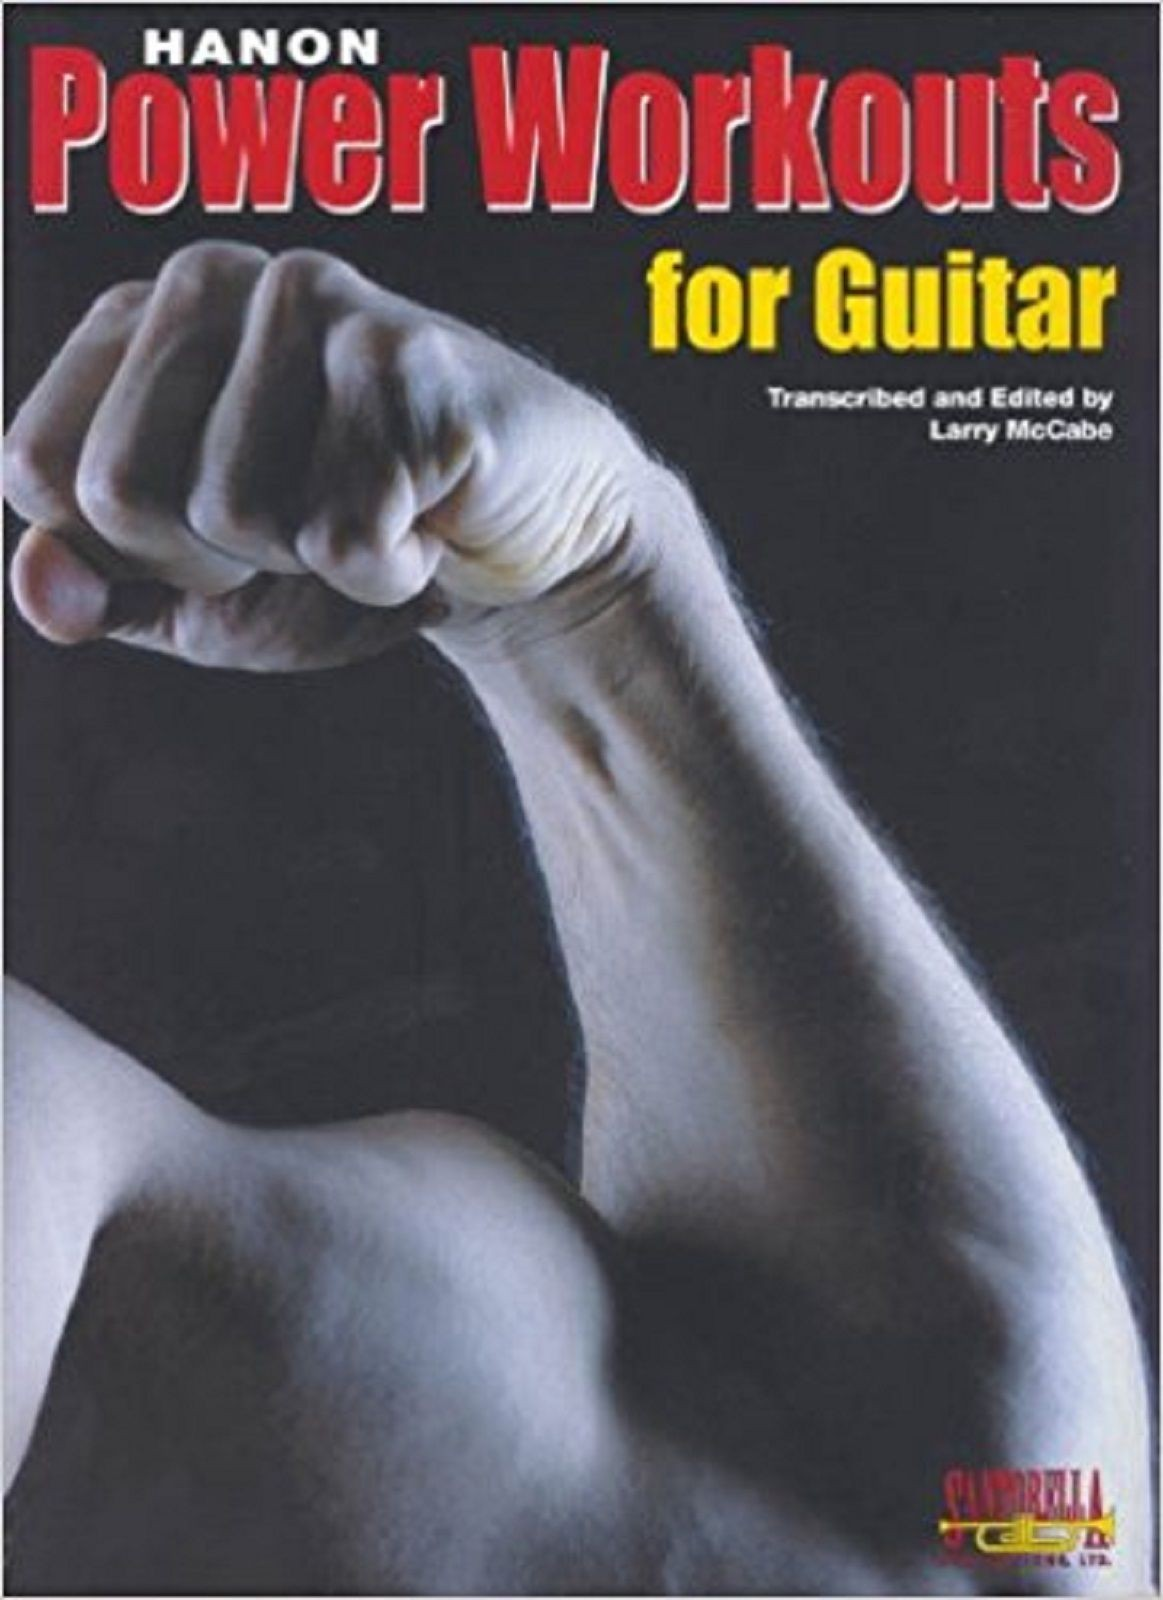 Hanon Power Workouts For Guitar TAB Music Book Larry McCabe Exercises S166